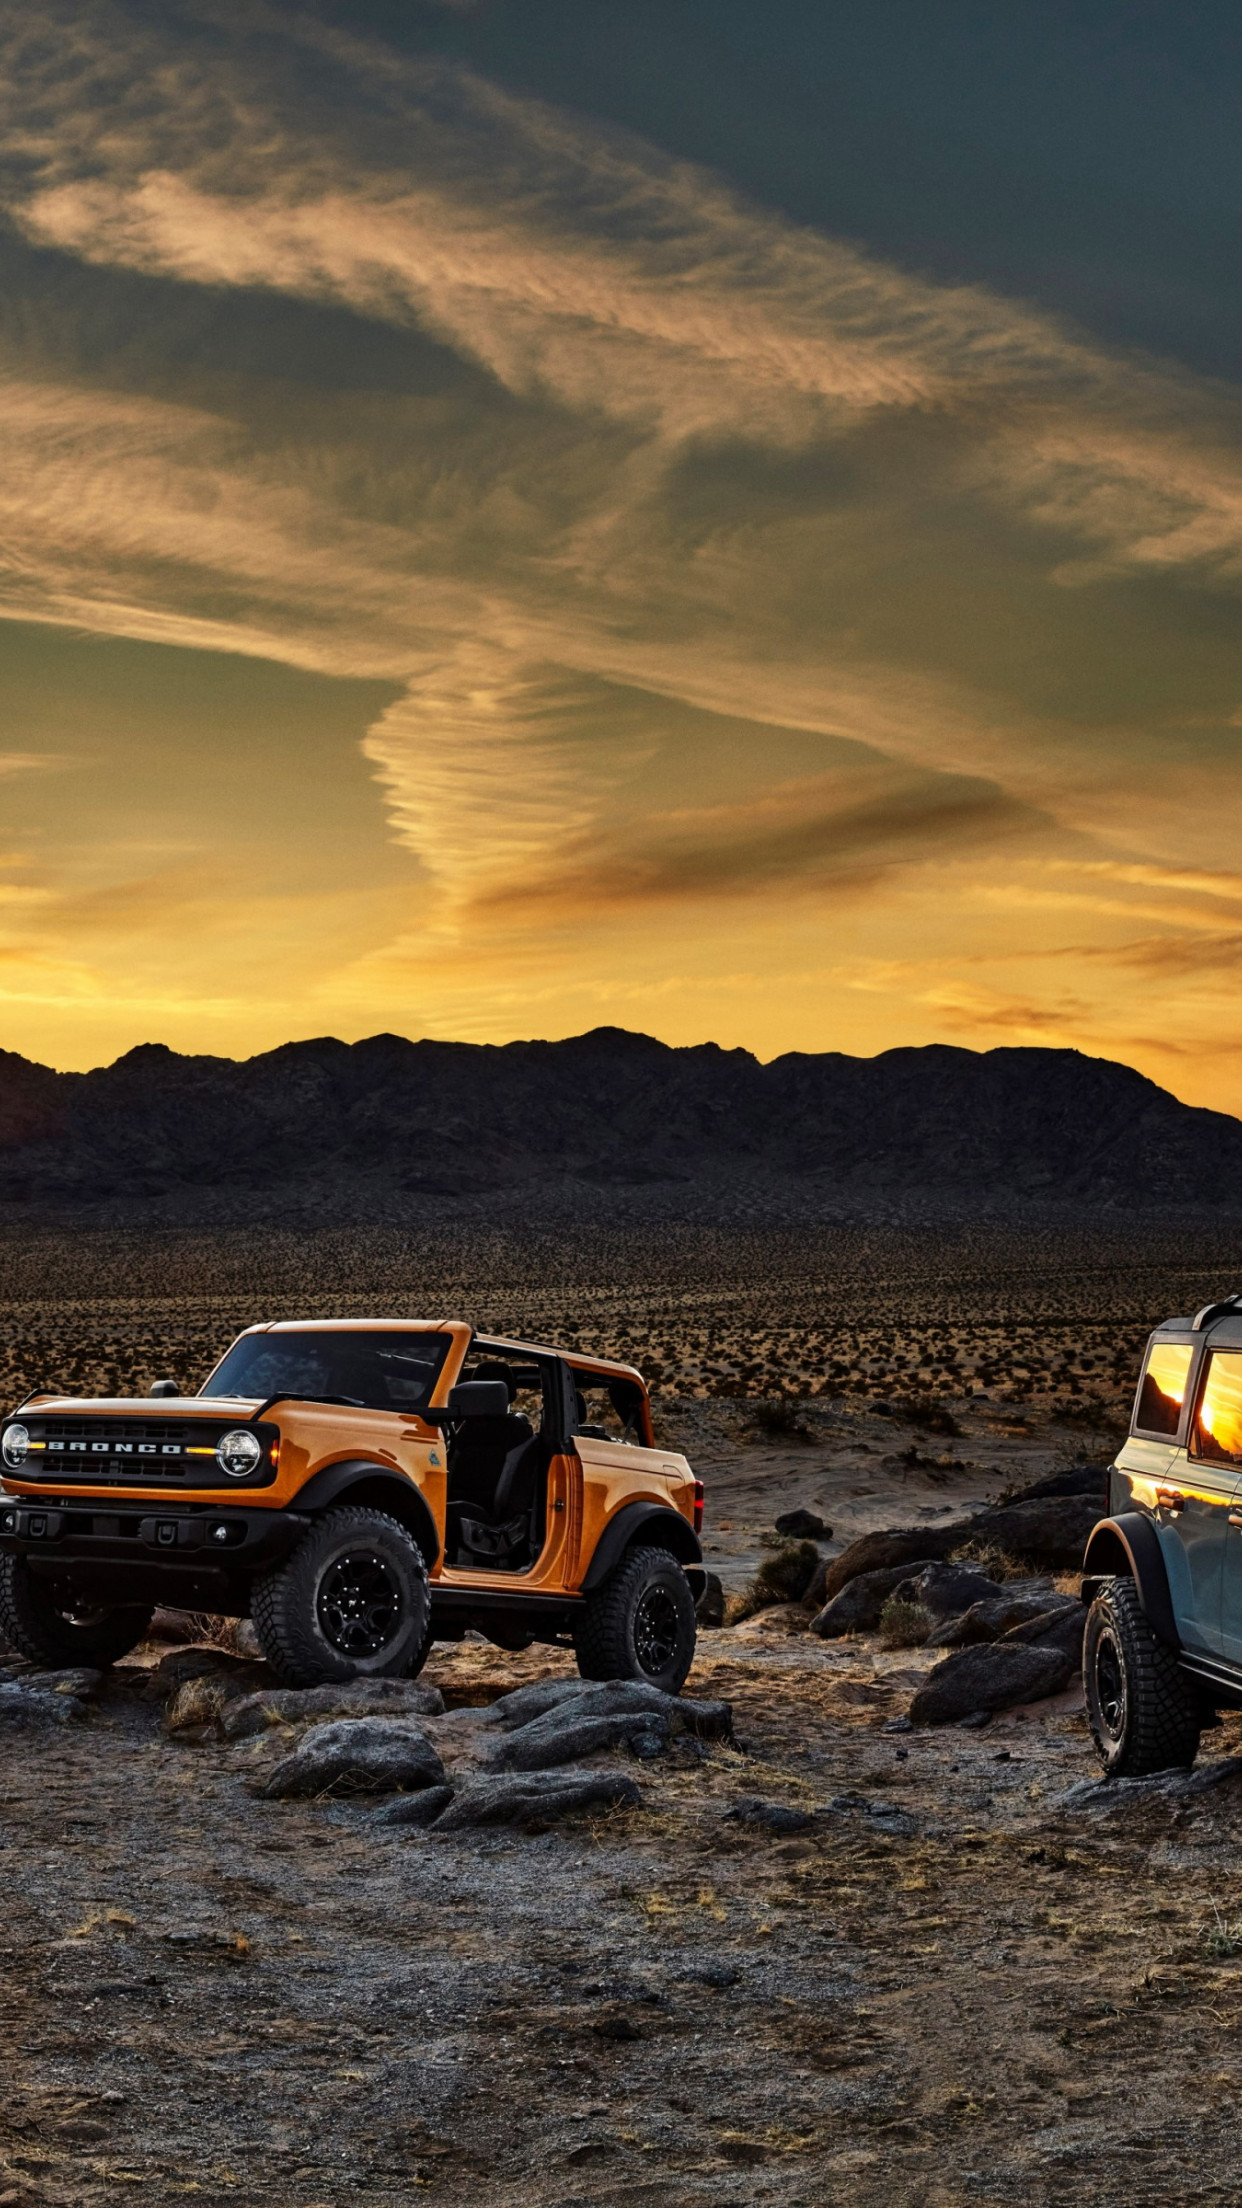 Download wallpaper: Ford Bronco 1242x2208